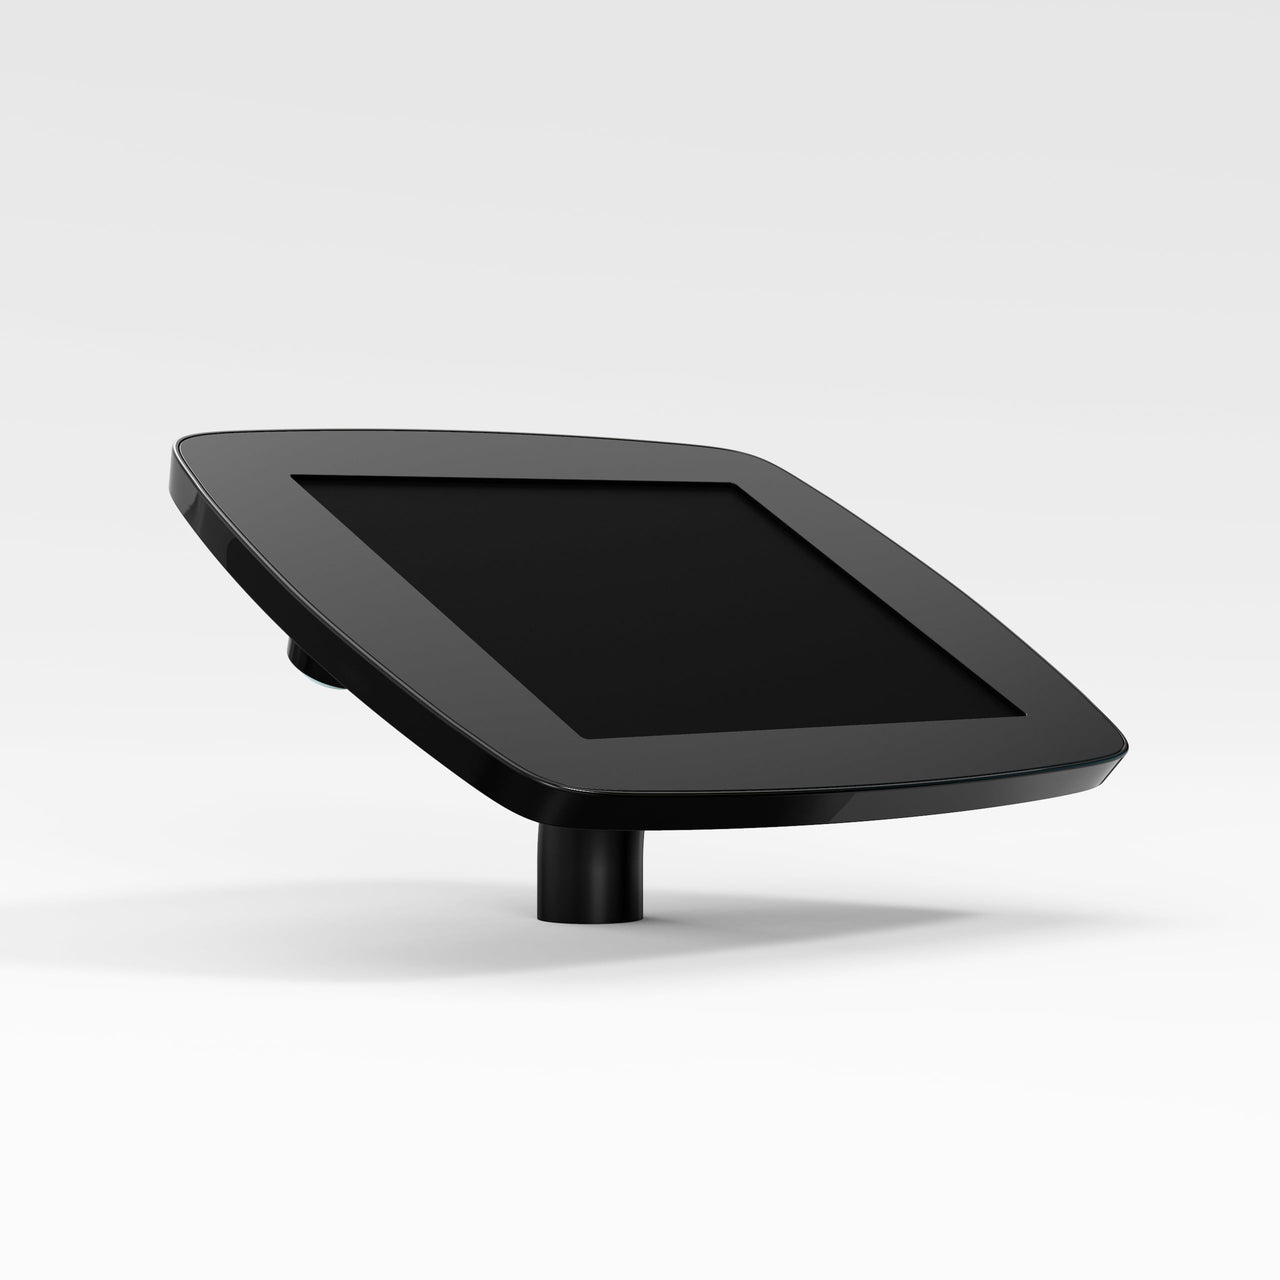 Bouncepad Desk - A secure tablet & iPad desk mount in black.